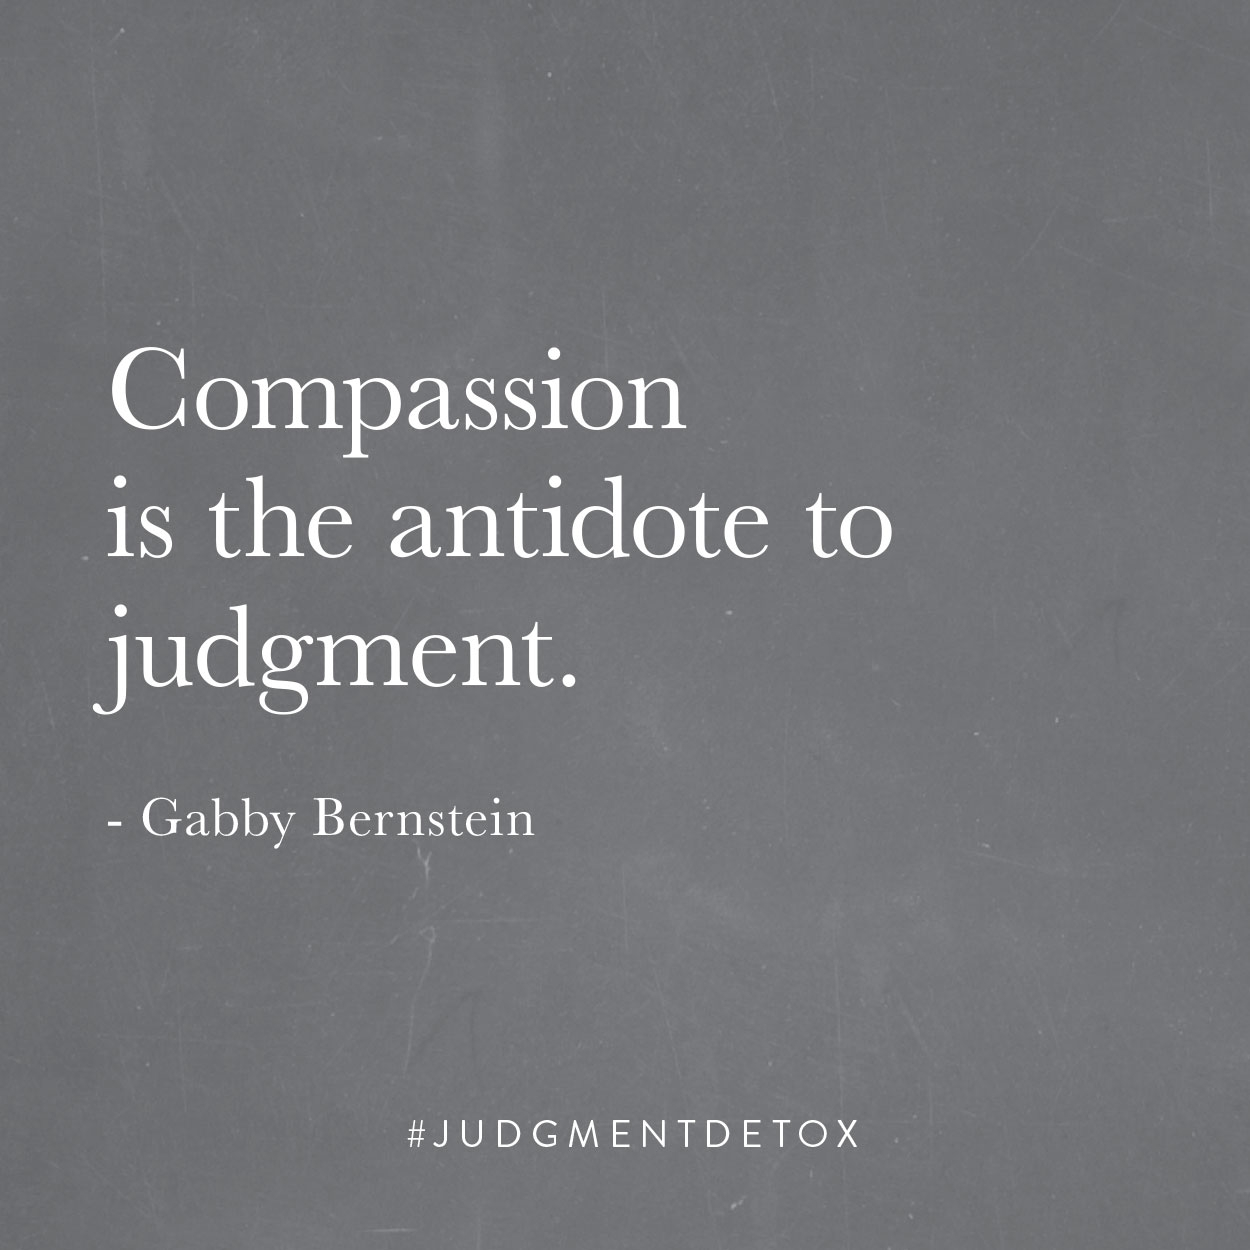 Compassion is the antidote to judgment | Gabby Bernstein Judgment Detox